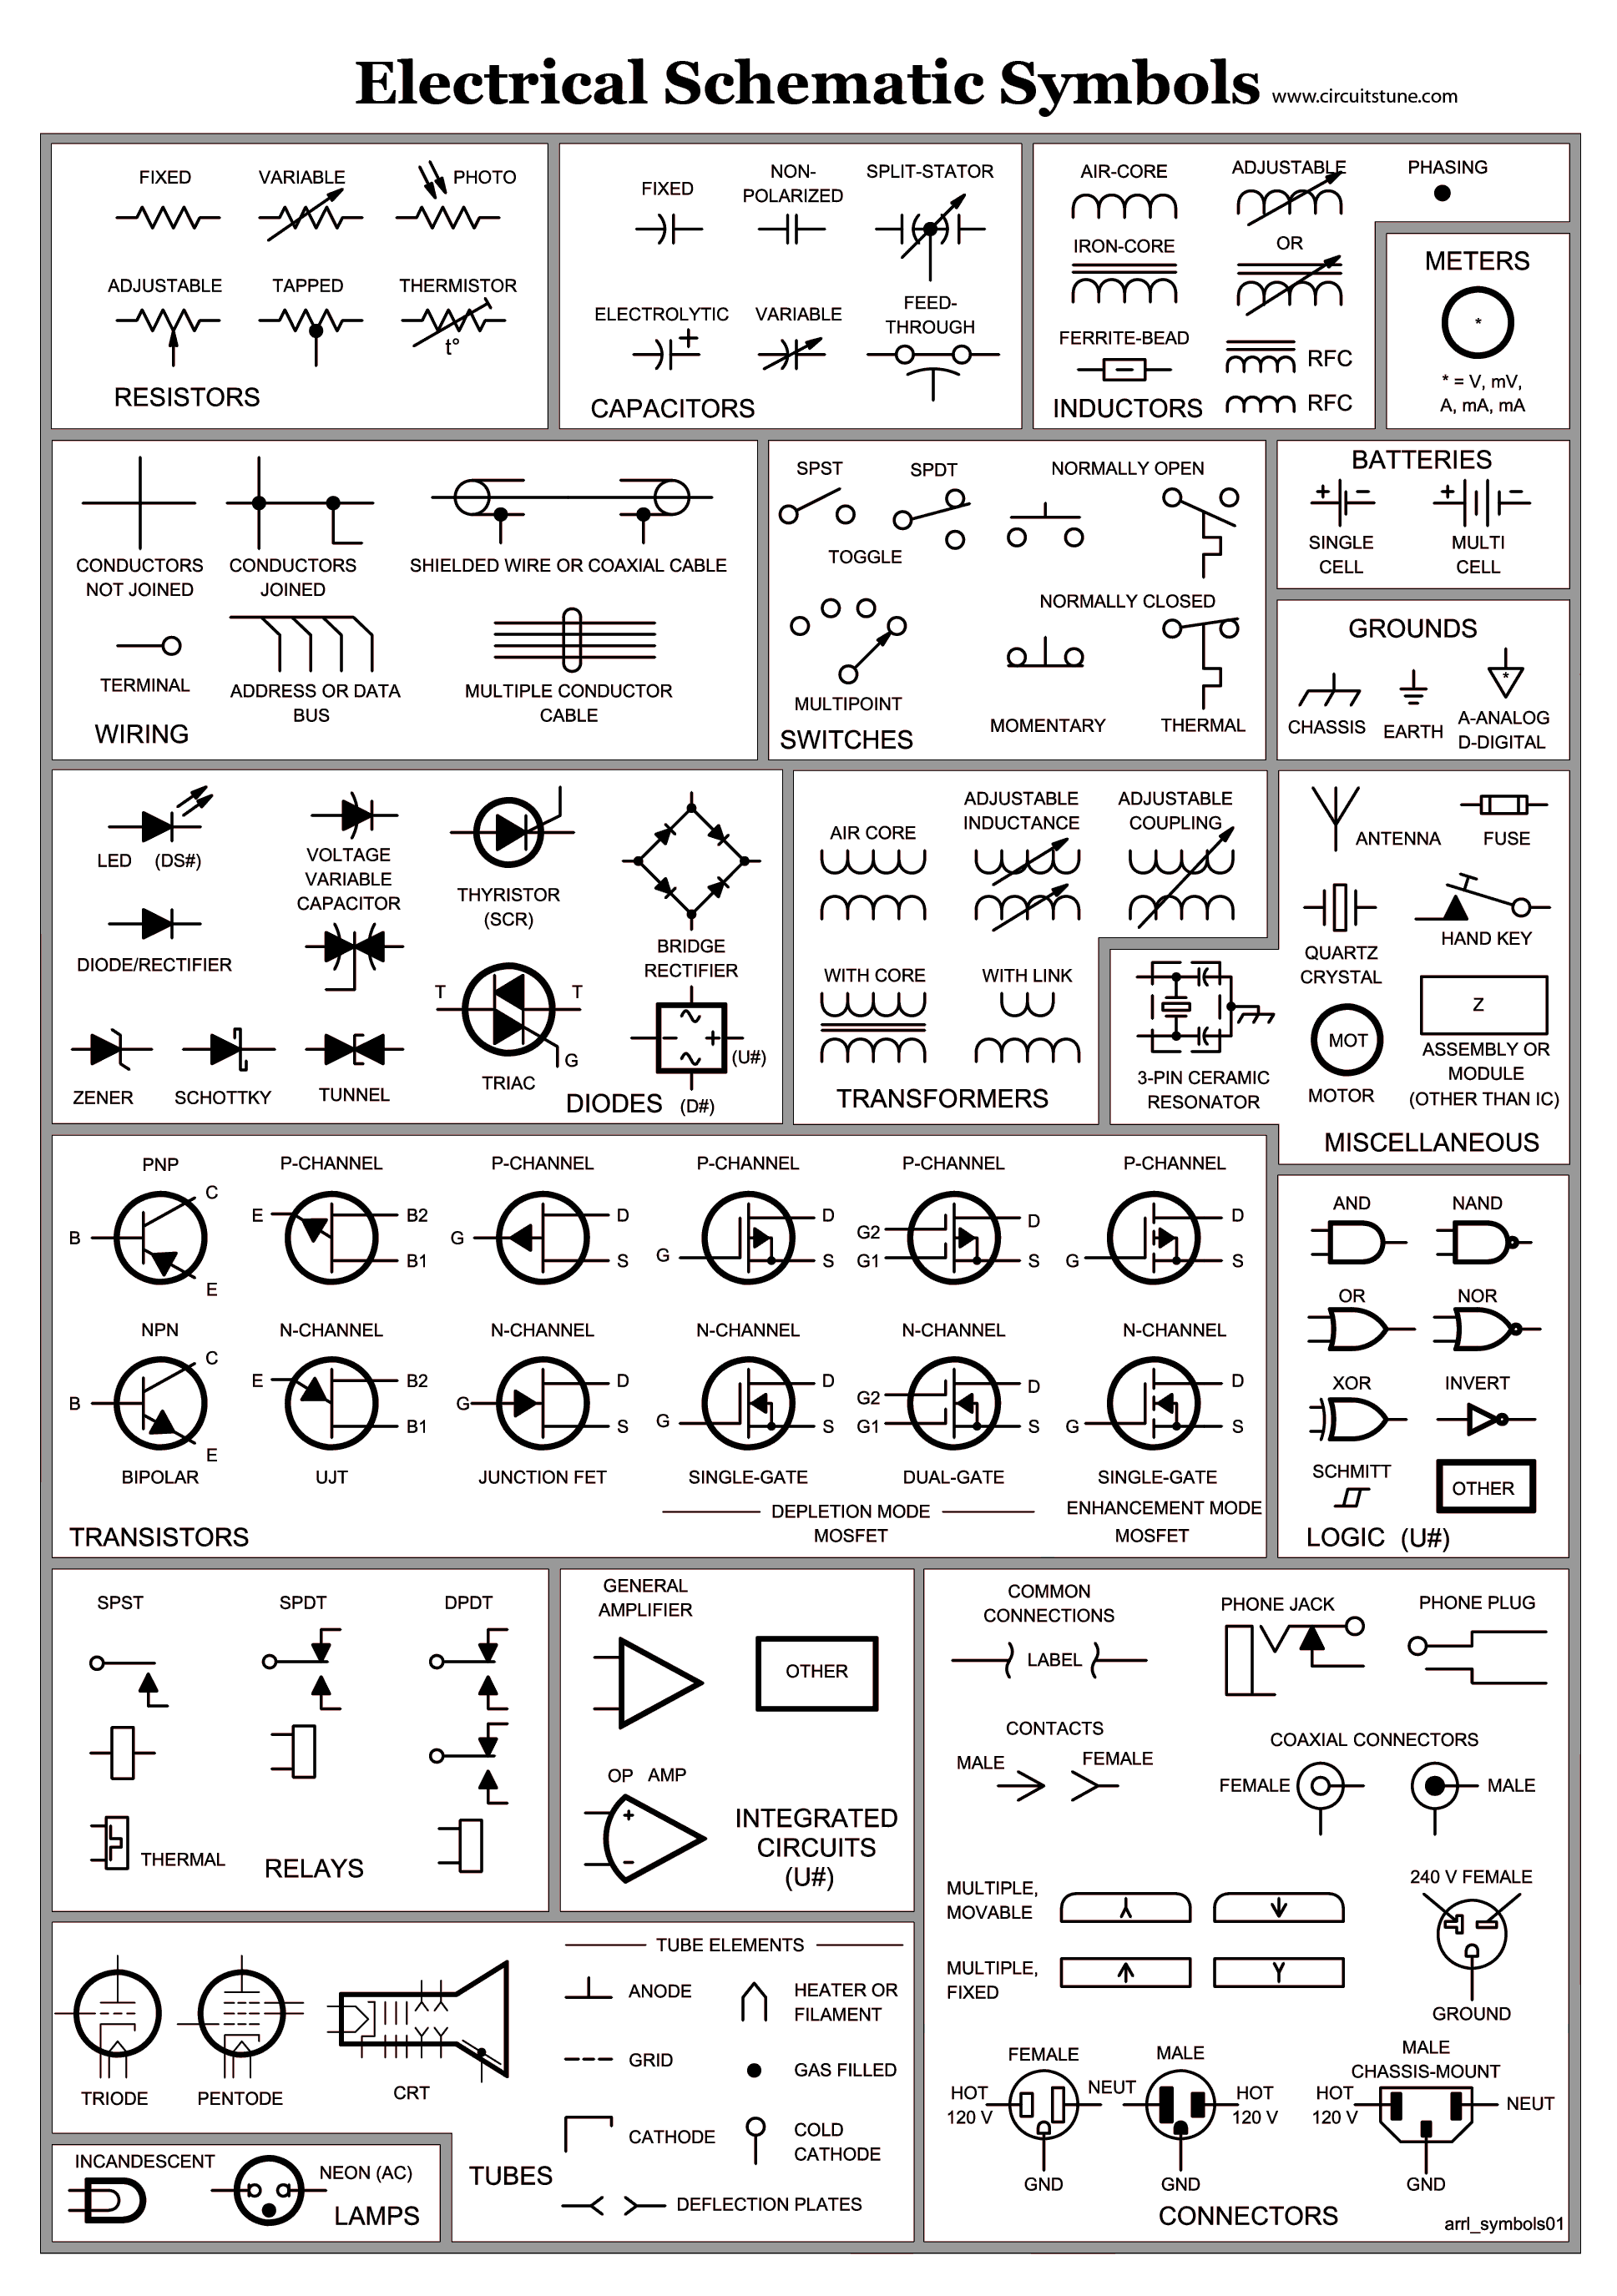 Diagram Wiringdiagram Diagramming Diagramm Visuals Visualisation Graphical Che Electrical Schematic Symbols Electrical Symbols Electrical Wiring Diagram